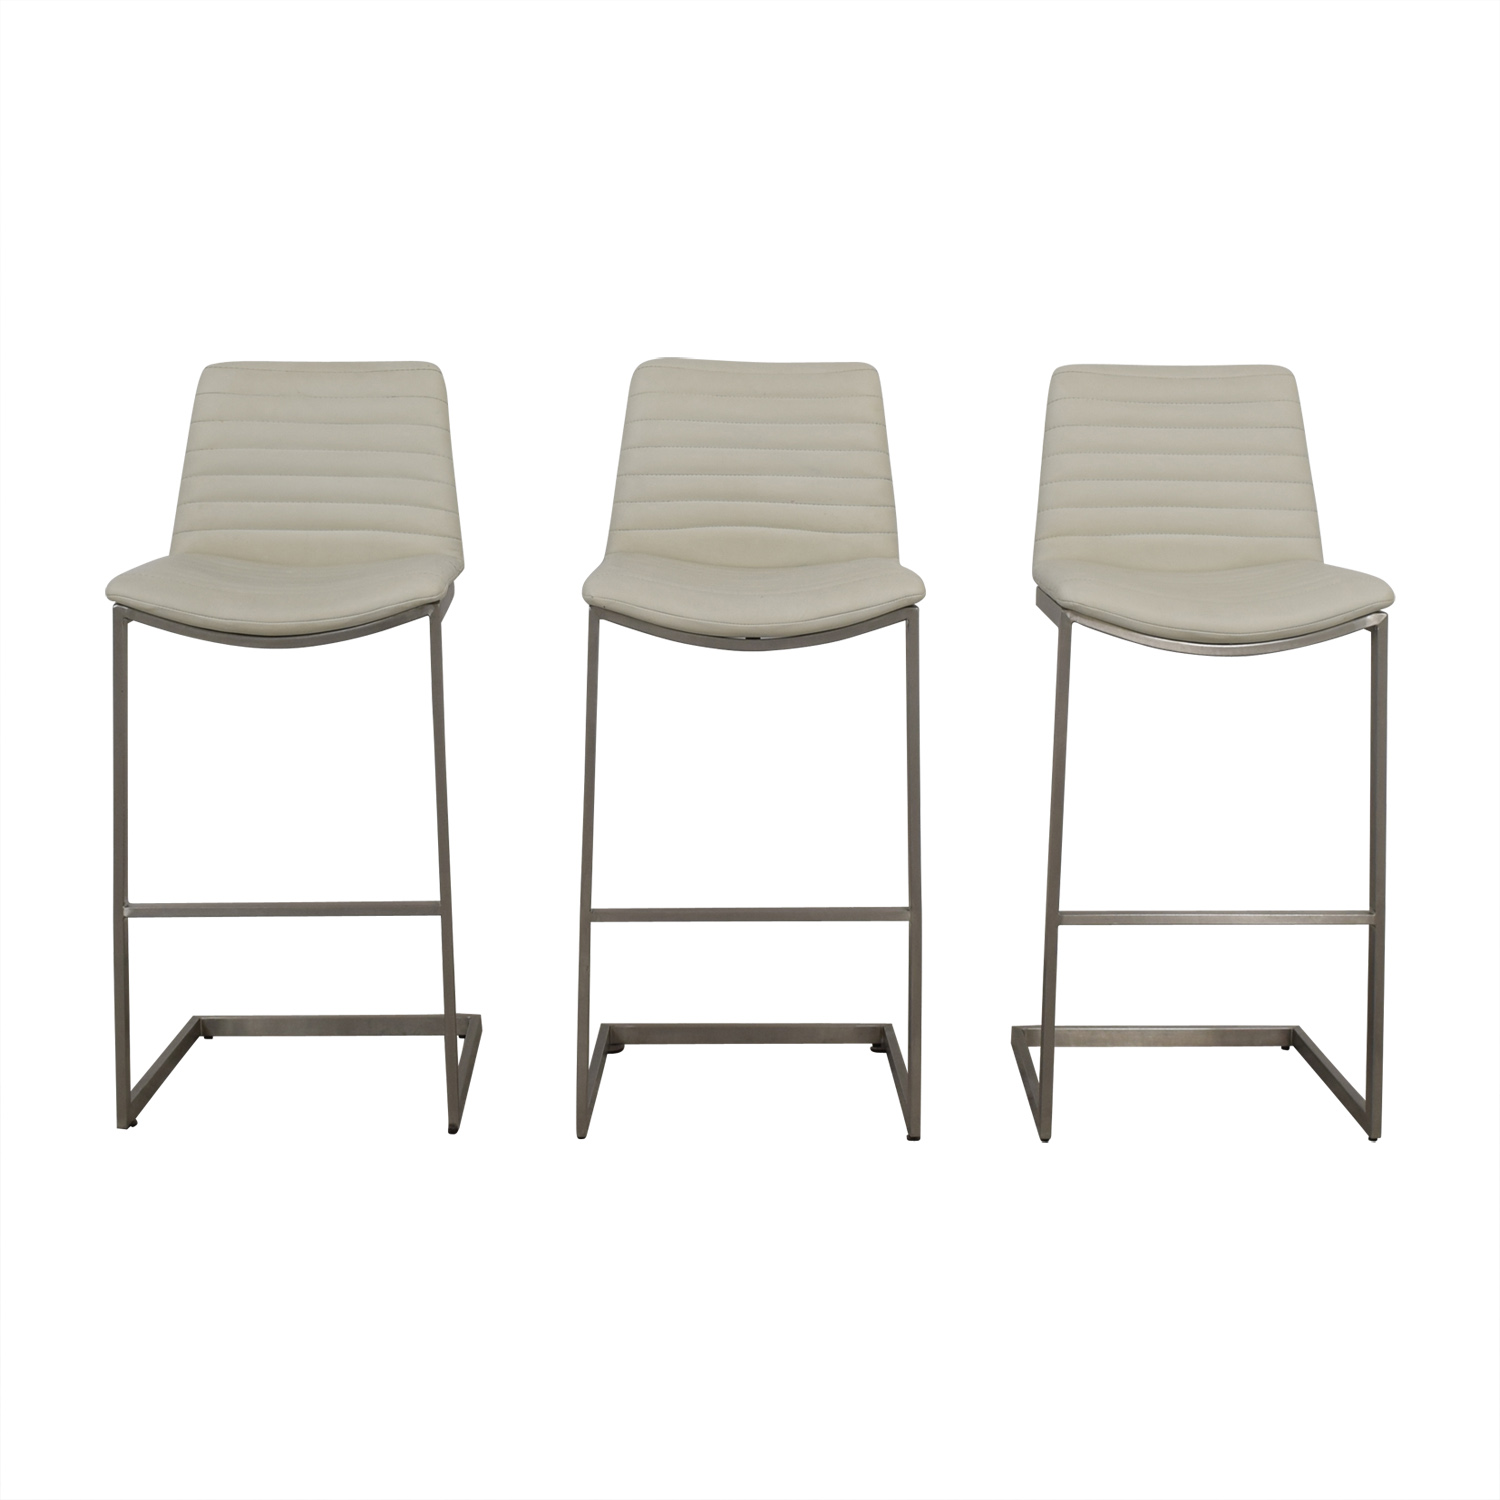 shop All Modern White Leather Stools All Modern